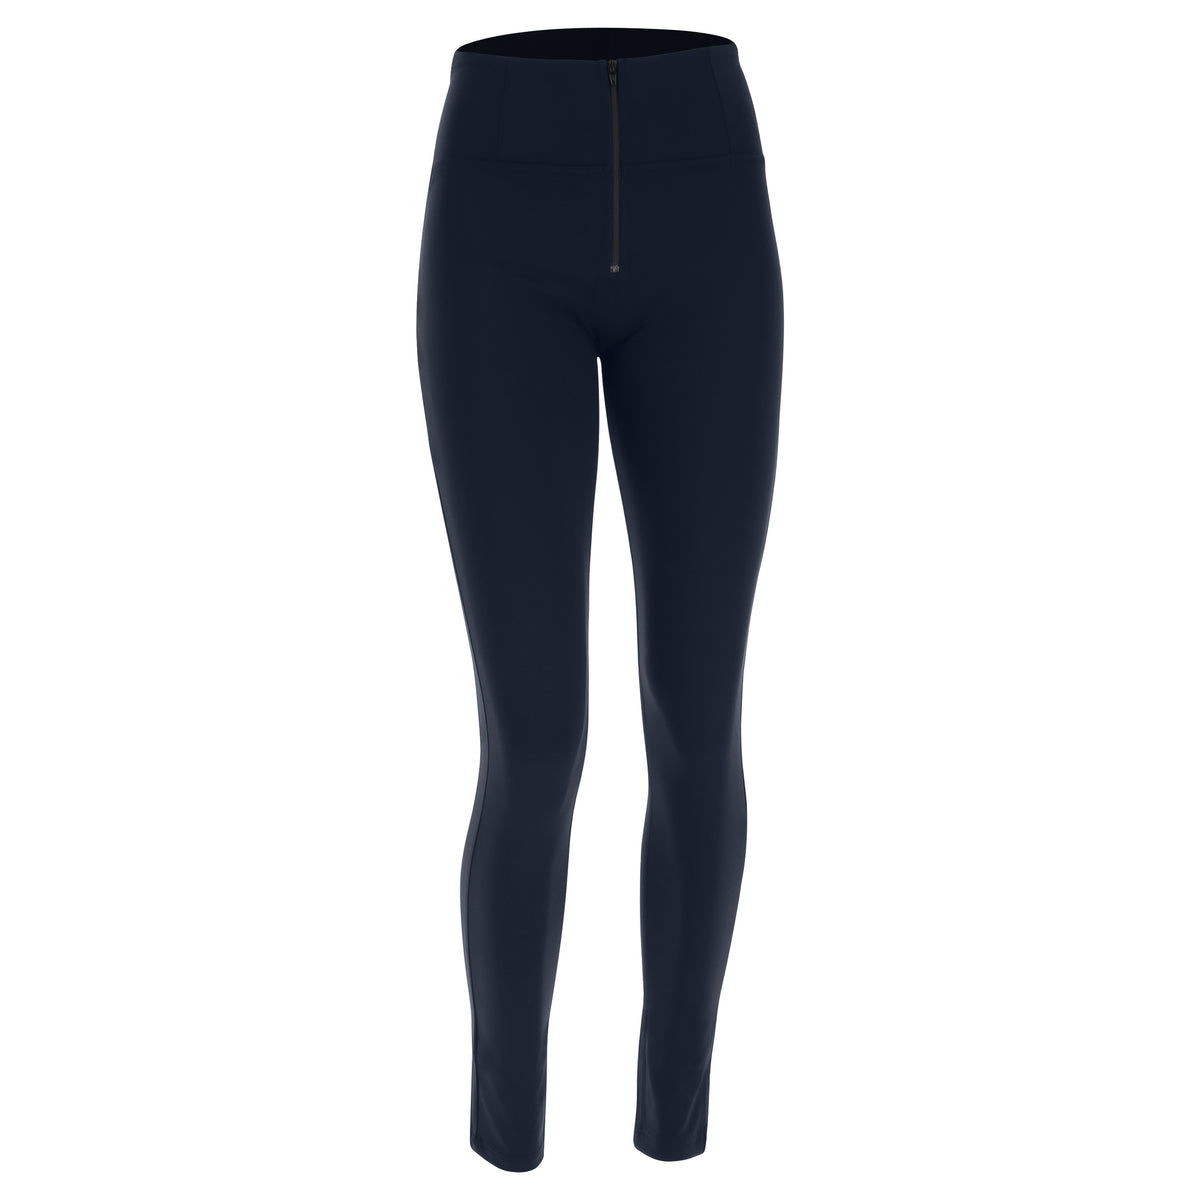 NAVY D.I.W.O.® PRO BEAUTY EFFECT HIGH WAIST